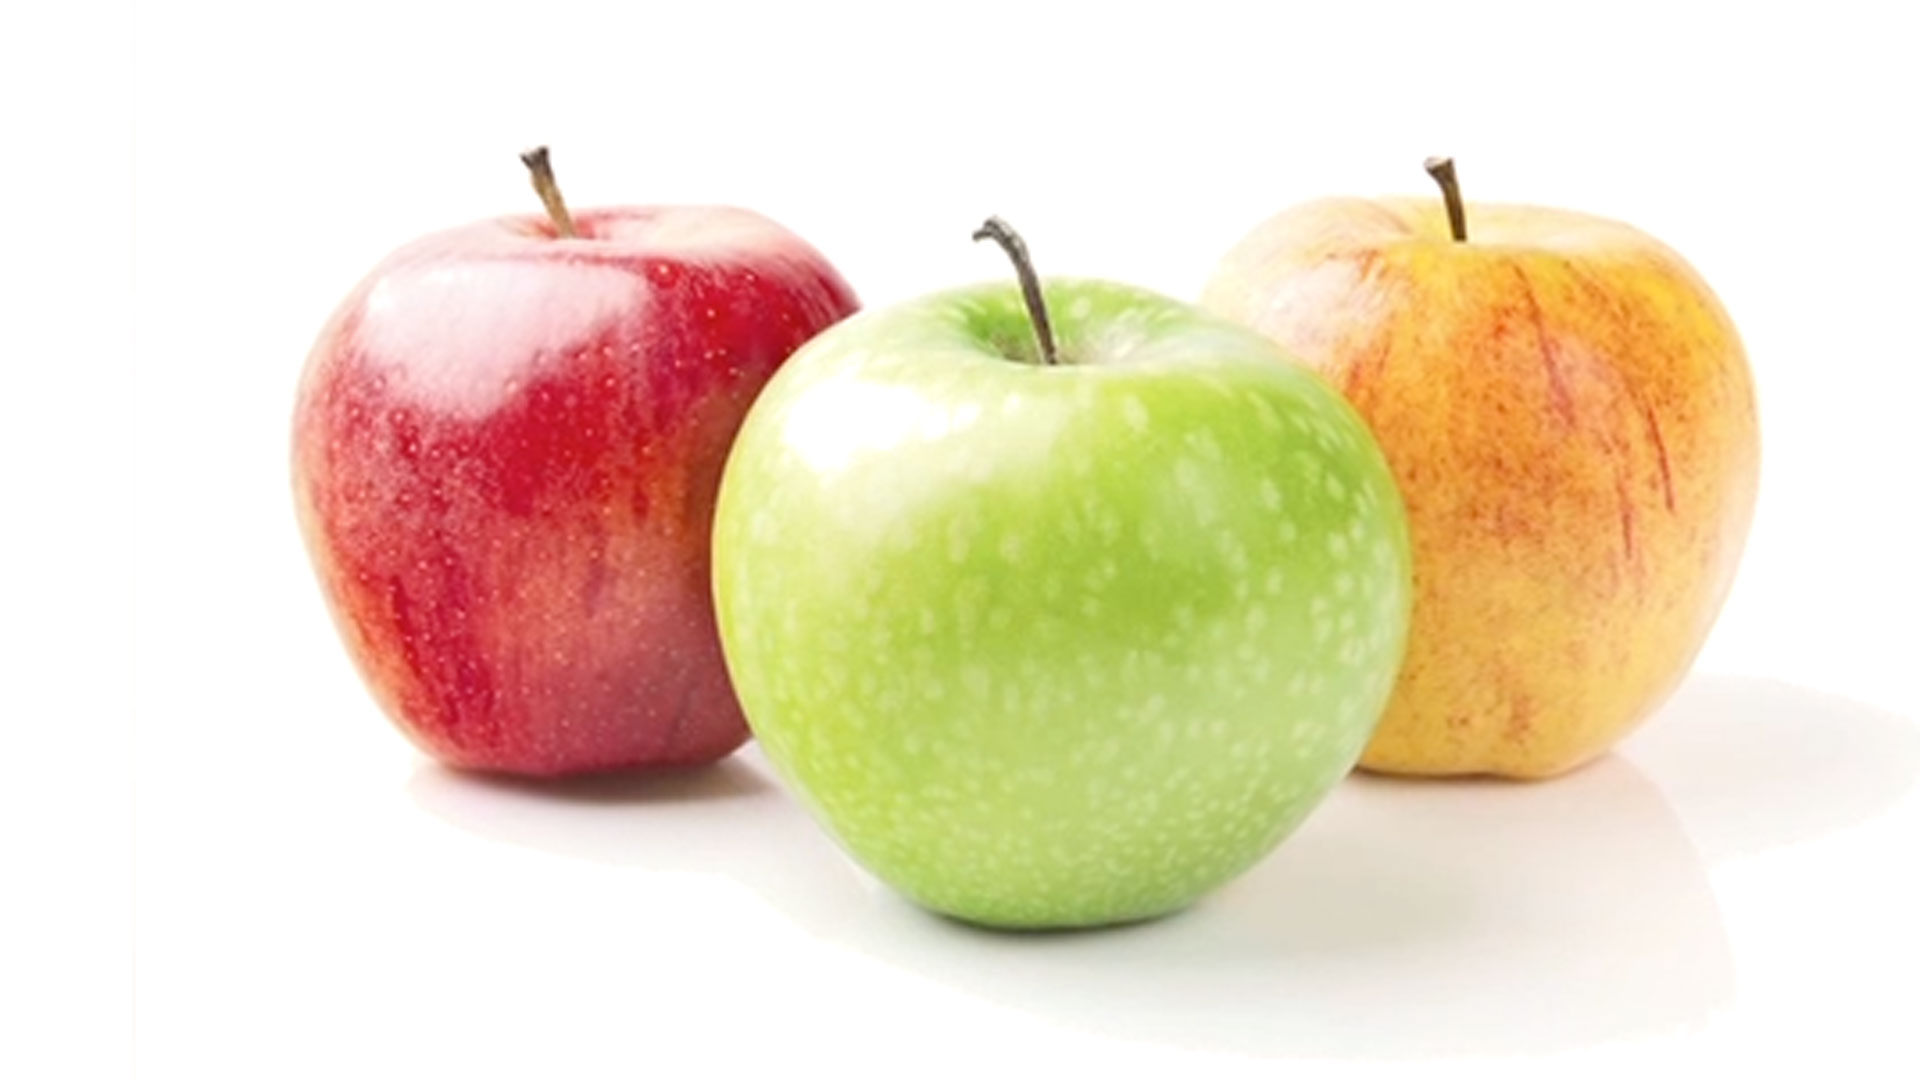 Use Apples to Battle Bad Bacteria